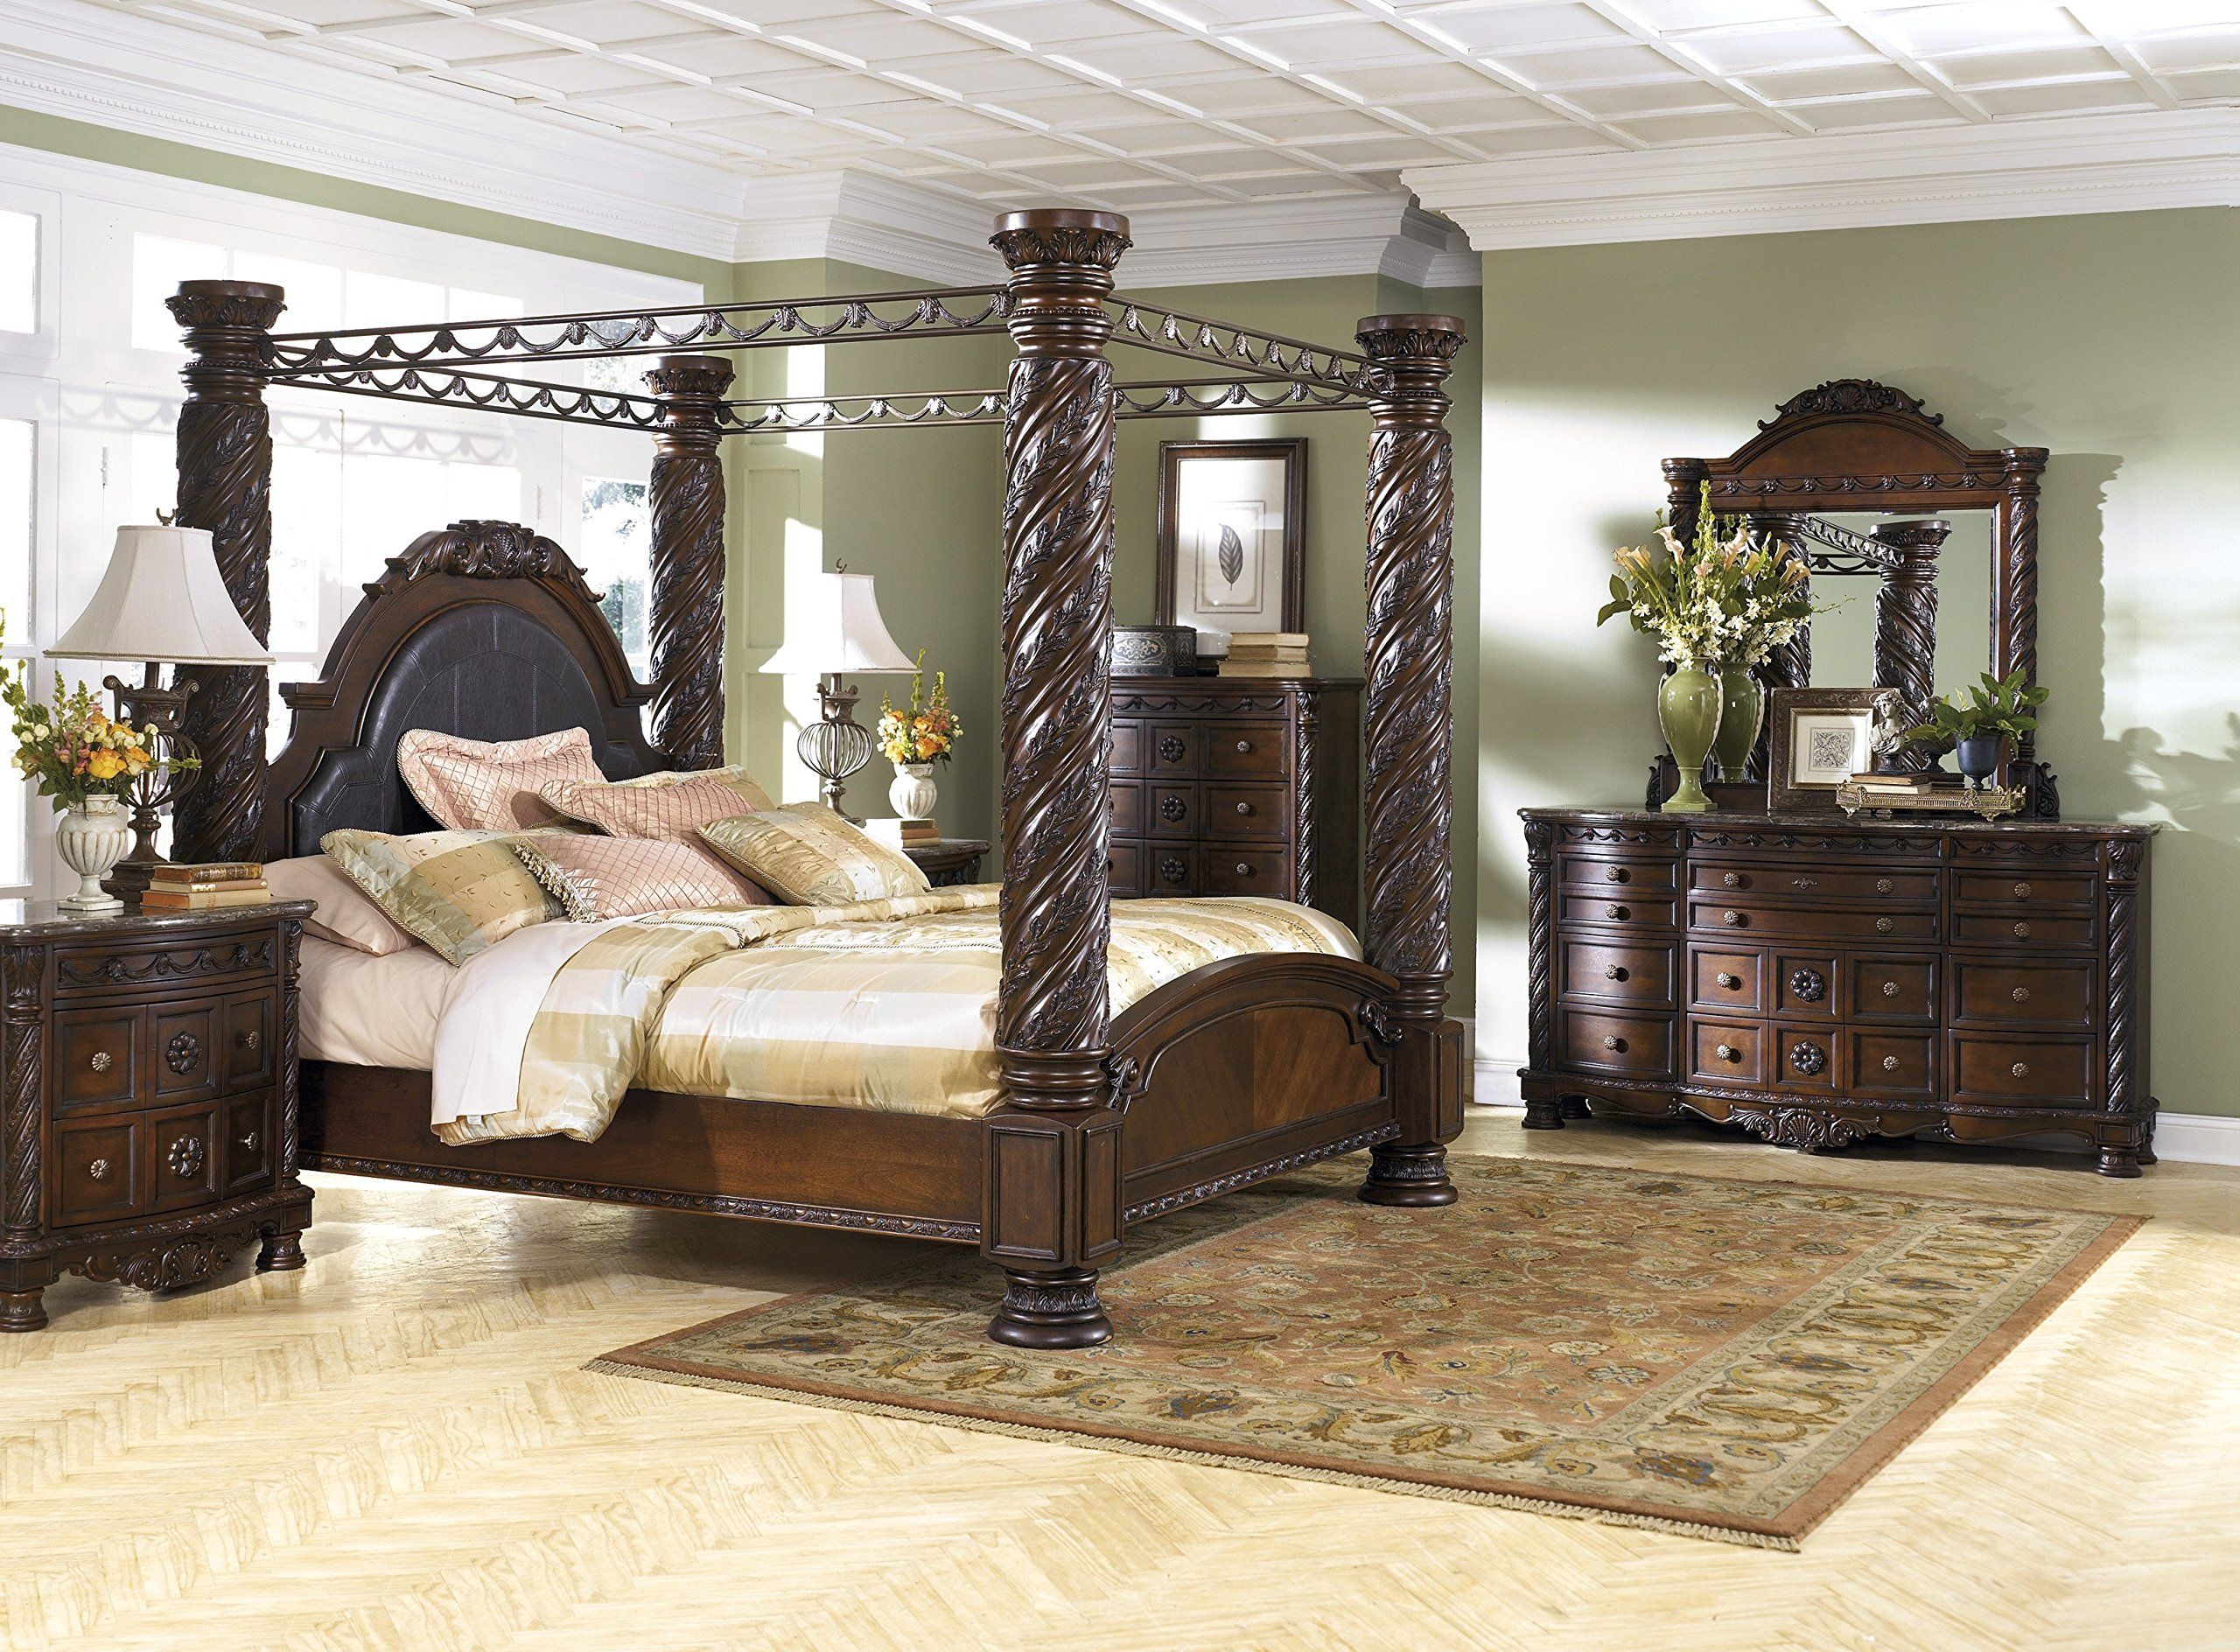 Ashley North Shore 5pc Bedroom Set Cal King Poster Canopy Bed Dresser Mirror Two Nightstand In Dark Brow Canopy Bedroom Sets Bedroom Set Bedroom Furniture Sets North shore bedroom set